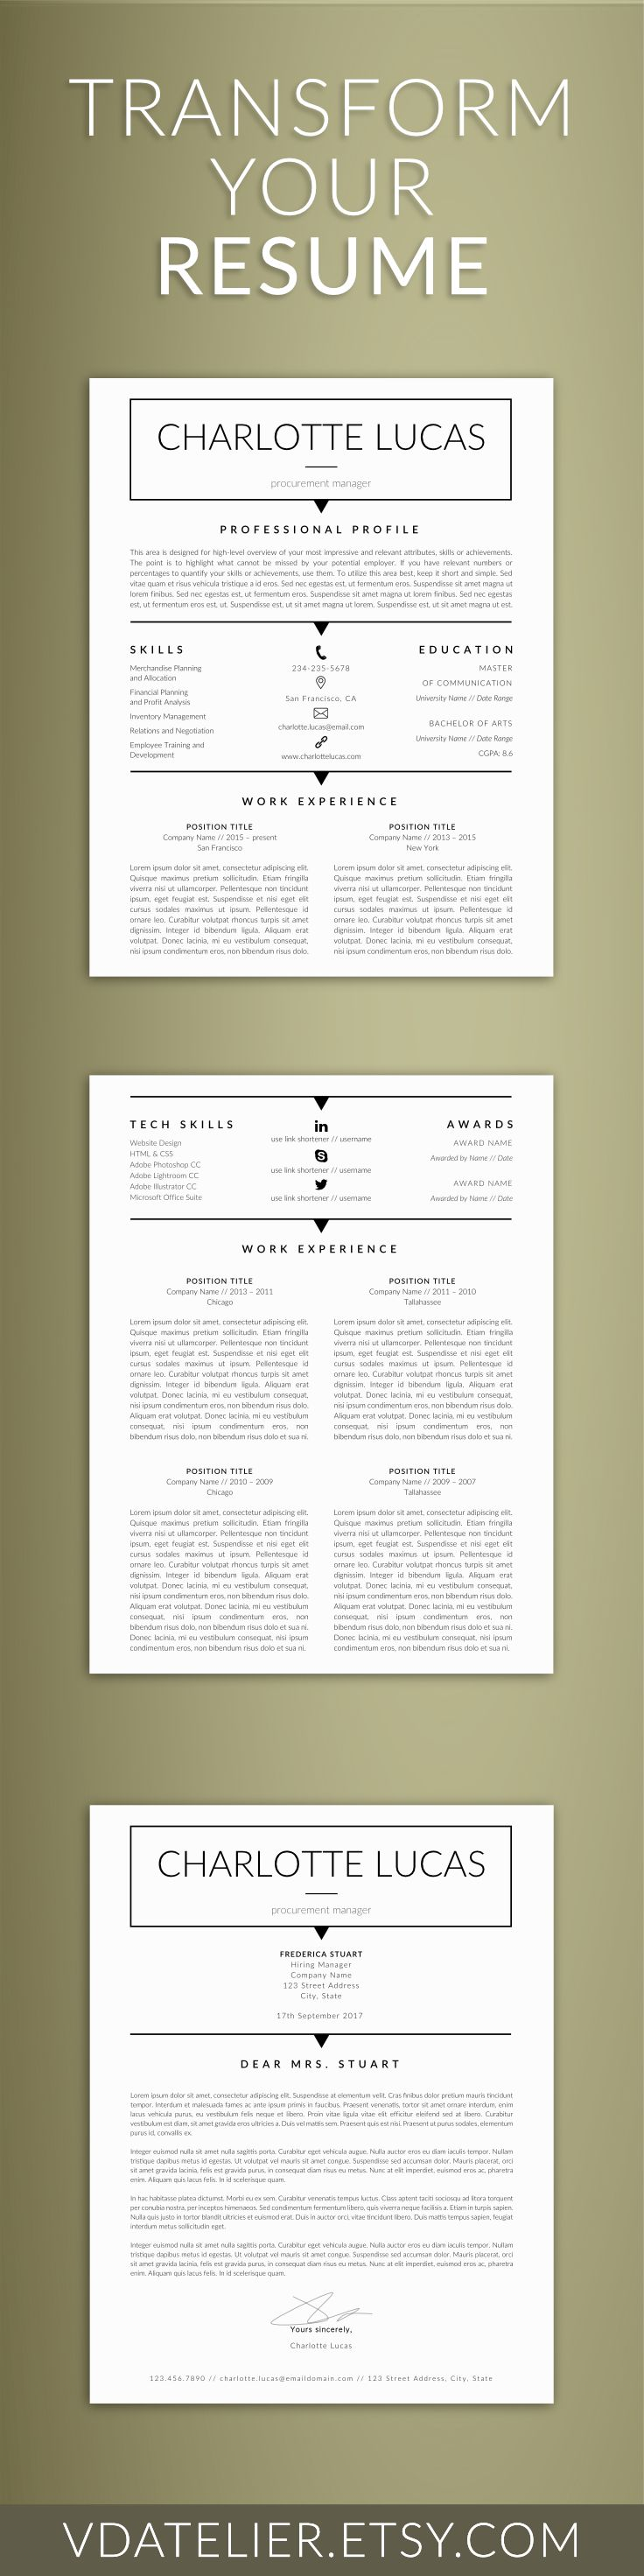 Minimalist Resume For MS Word | CV Clean, Printable Resume | CV Template,  Modern  Resume Or Cv